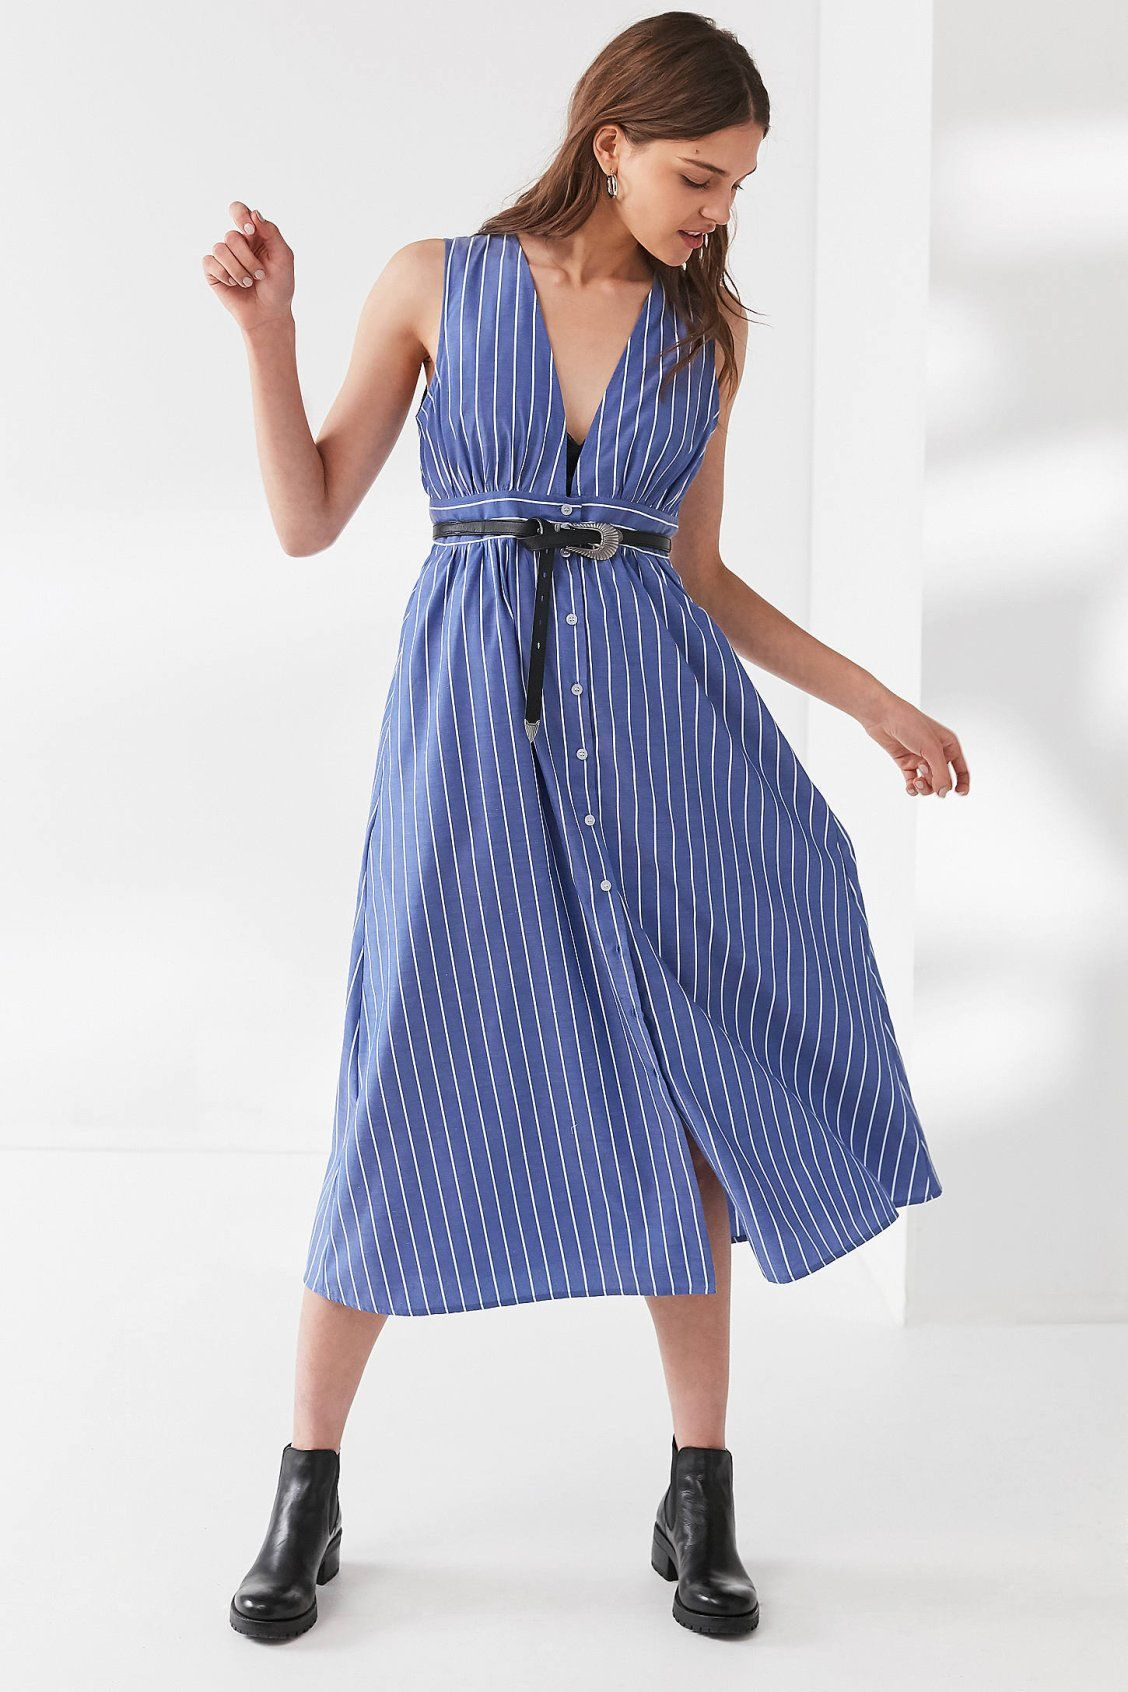 d28bef1ea19a UO Striped Button-Down Plunging Midi Dress | Urban Outfitters Urban Dresses,  Trendy Dresses